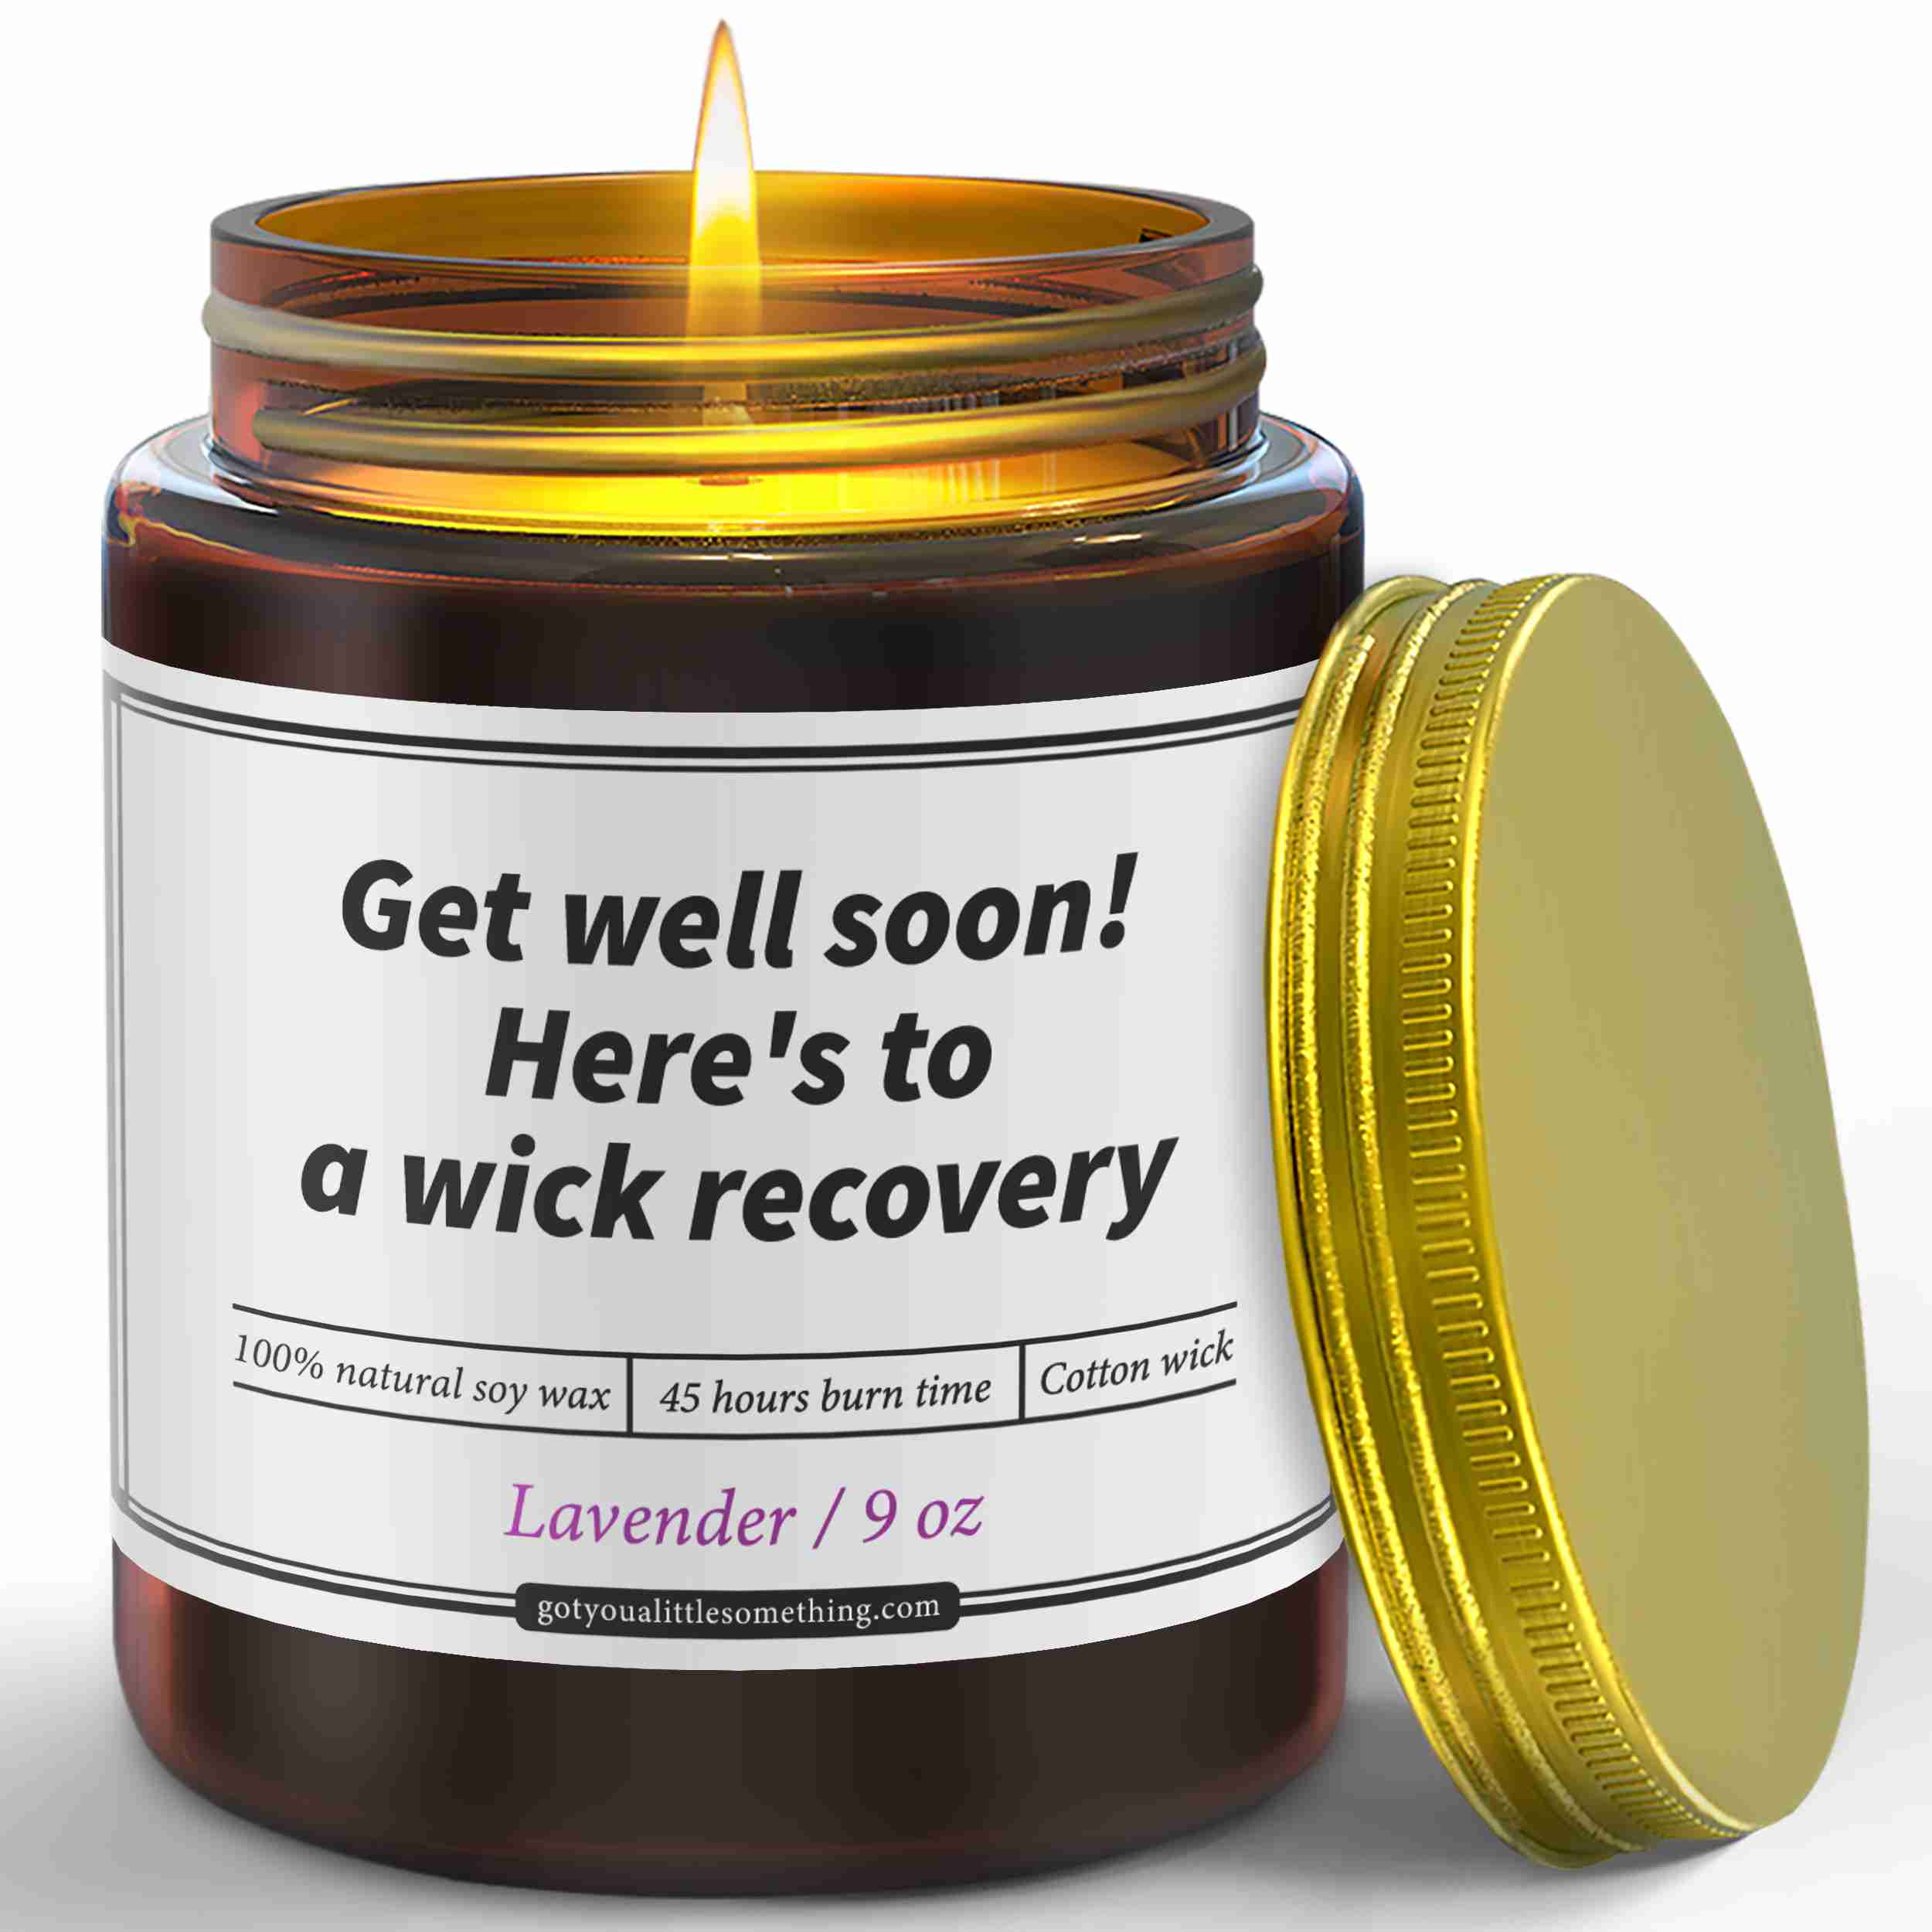 Funny-get-well-soon-candle-gift with cash back rebate